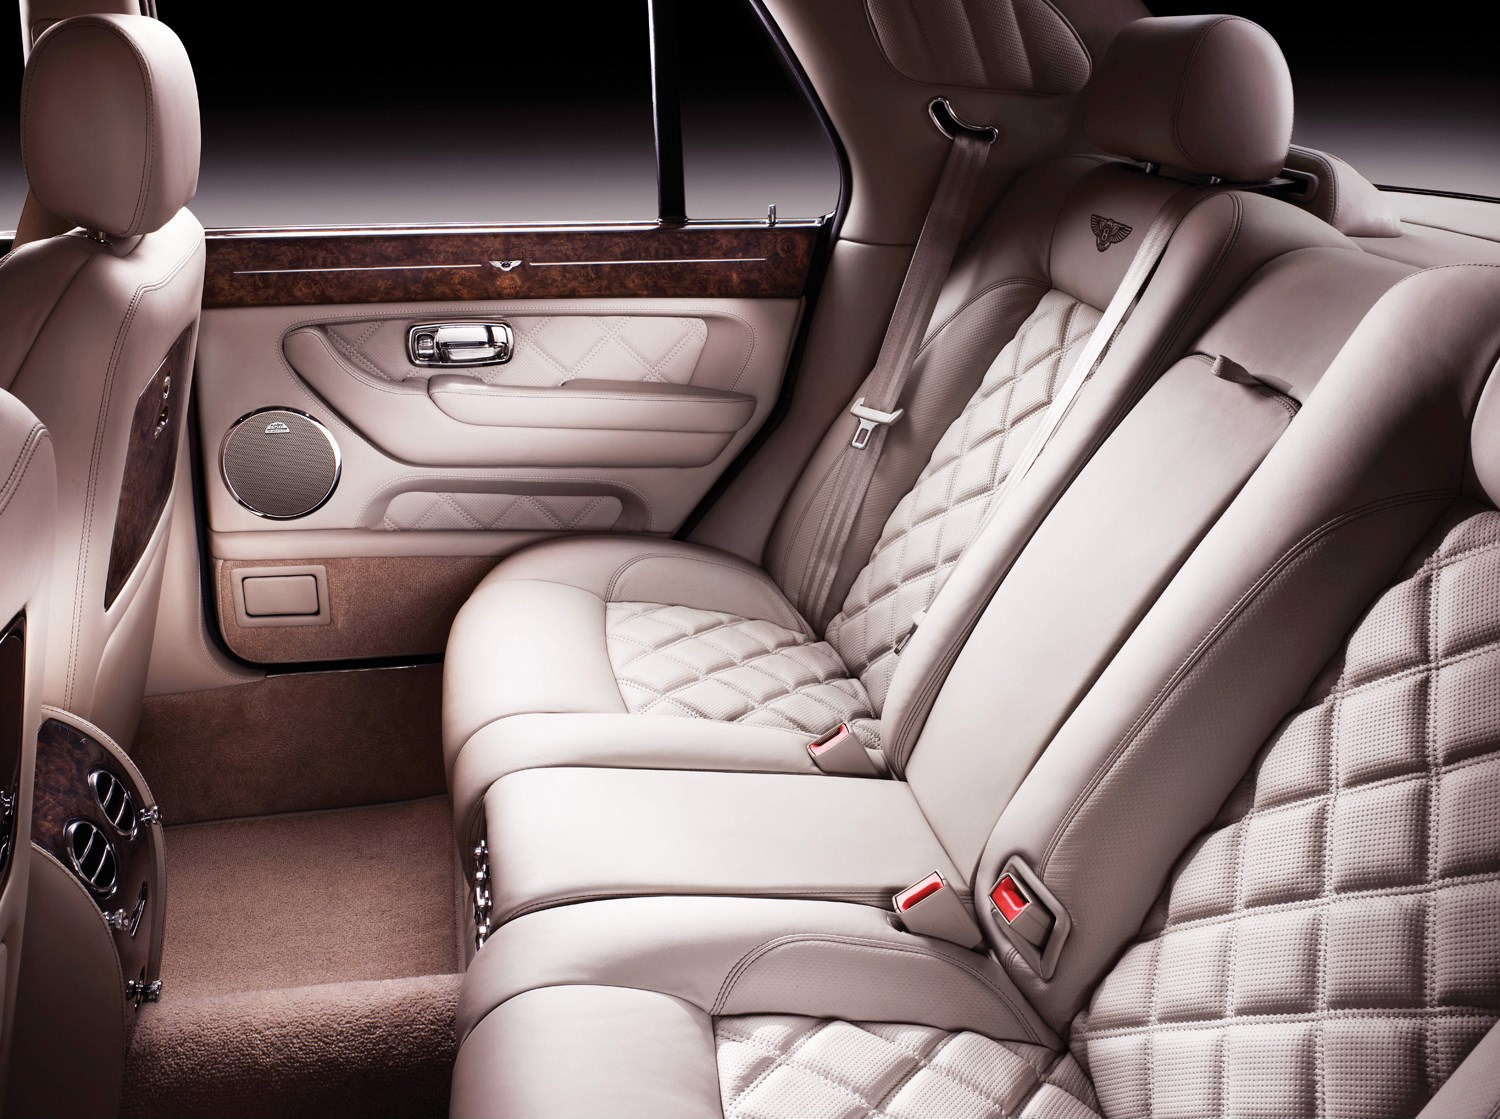 Bentley arnage saloon review 1998 2009 parkers view all images of the bentley arnage 98 09 vanachro Choice Image